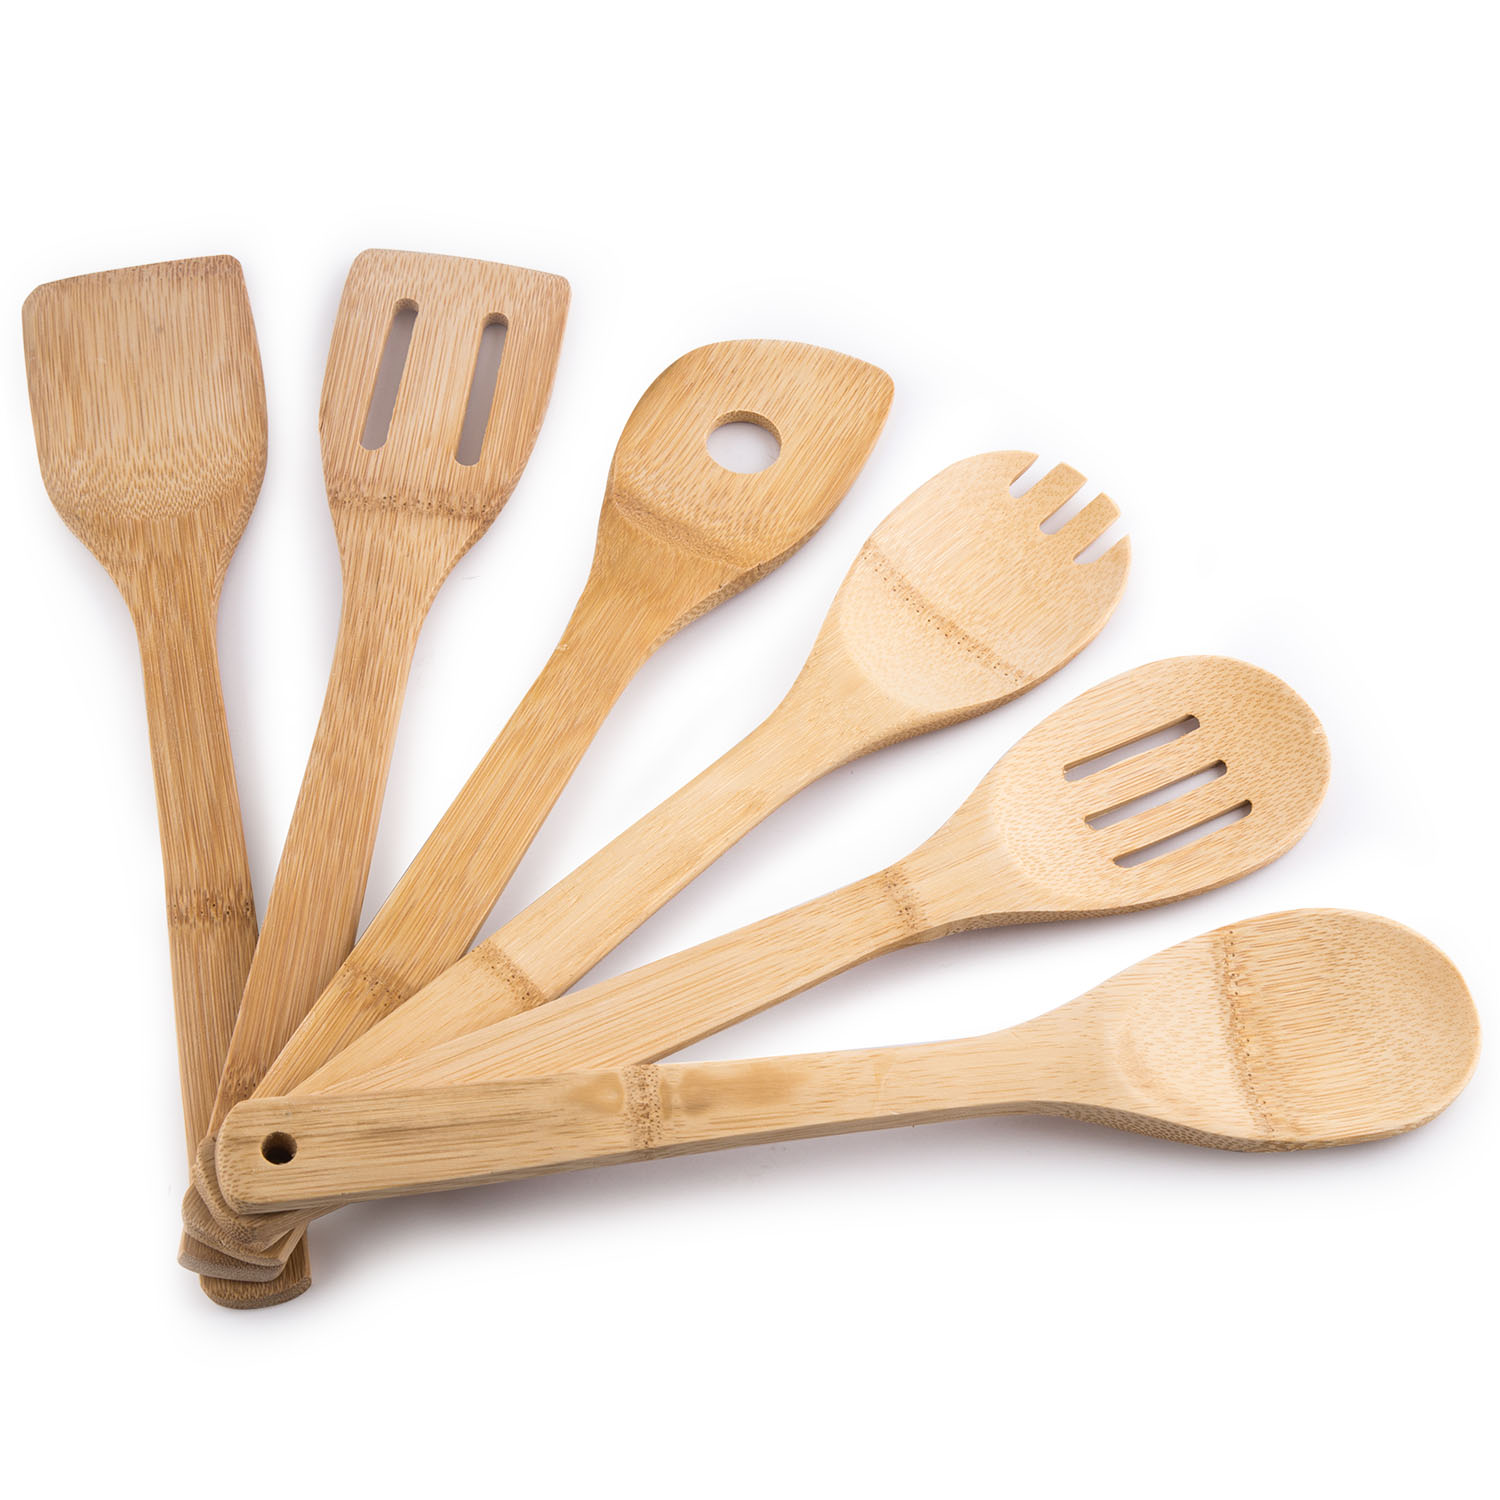 MEGALOWMART 6 Piece Bamboo Kitchen Tools Utensil Set